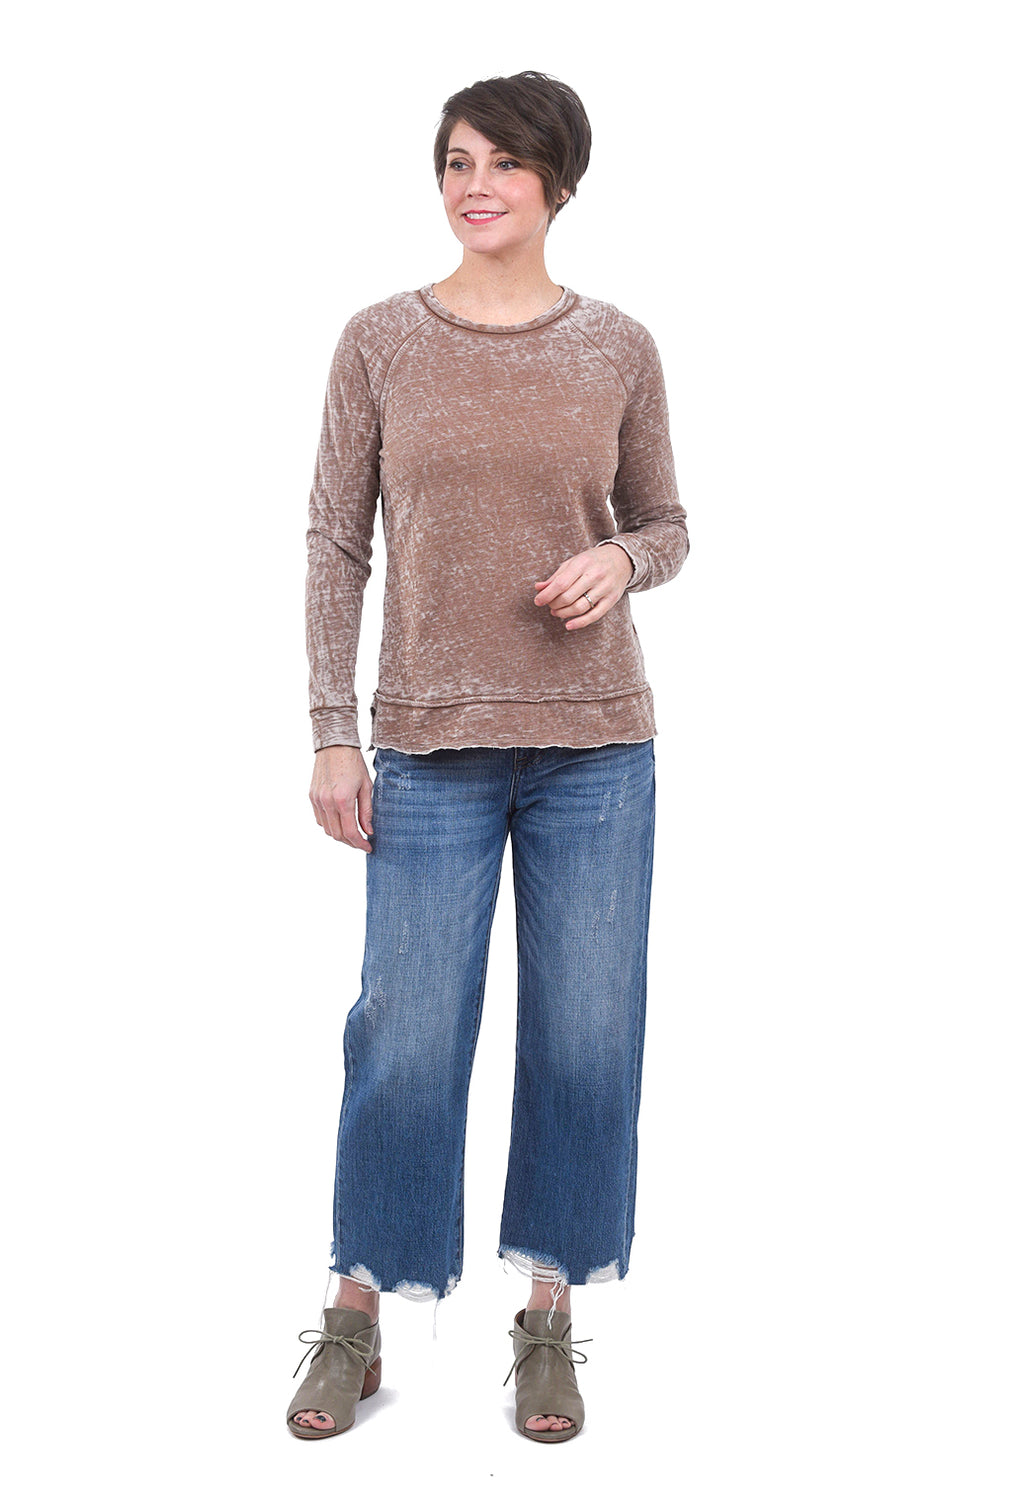 T Party Burnout Raw-Edge Sweatshirt, Mocha